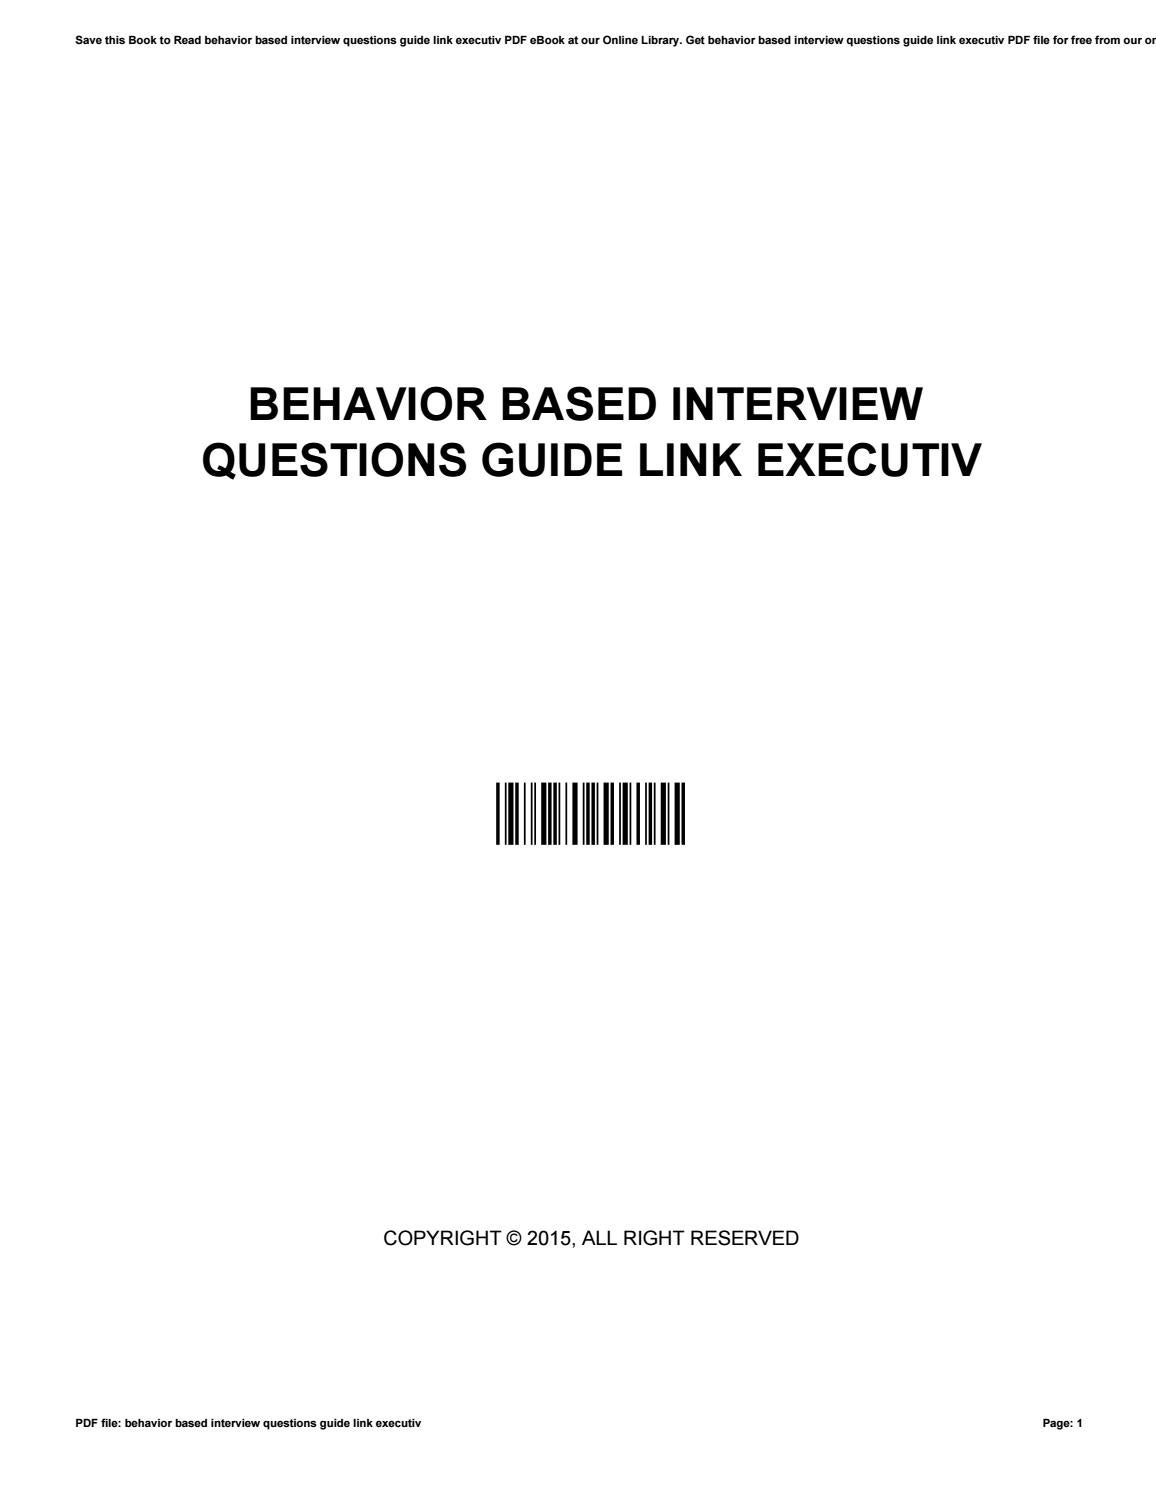 behavior based interview questions